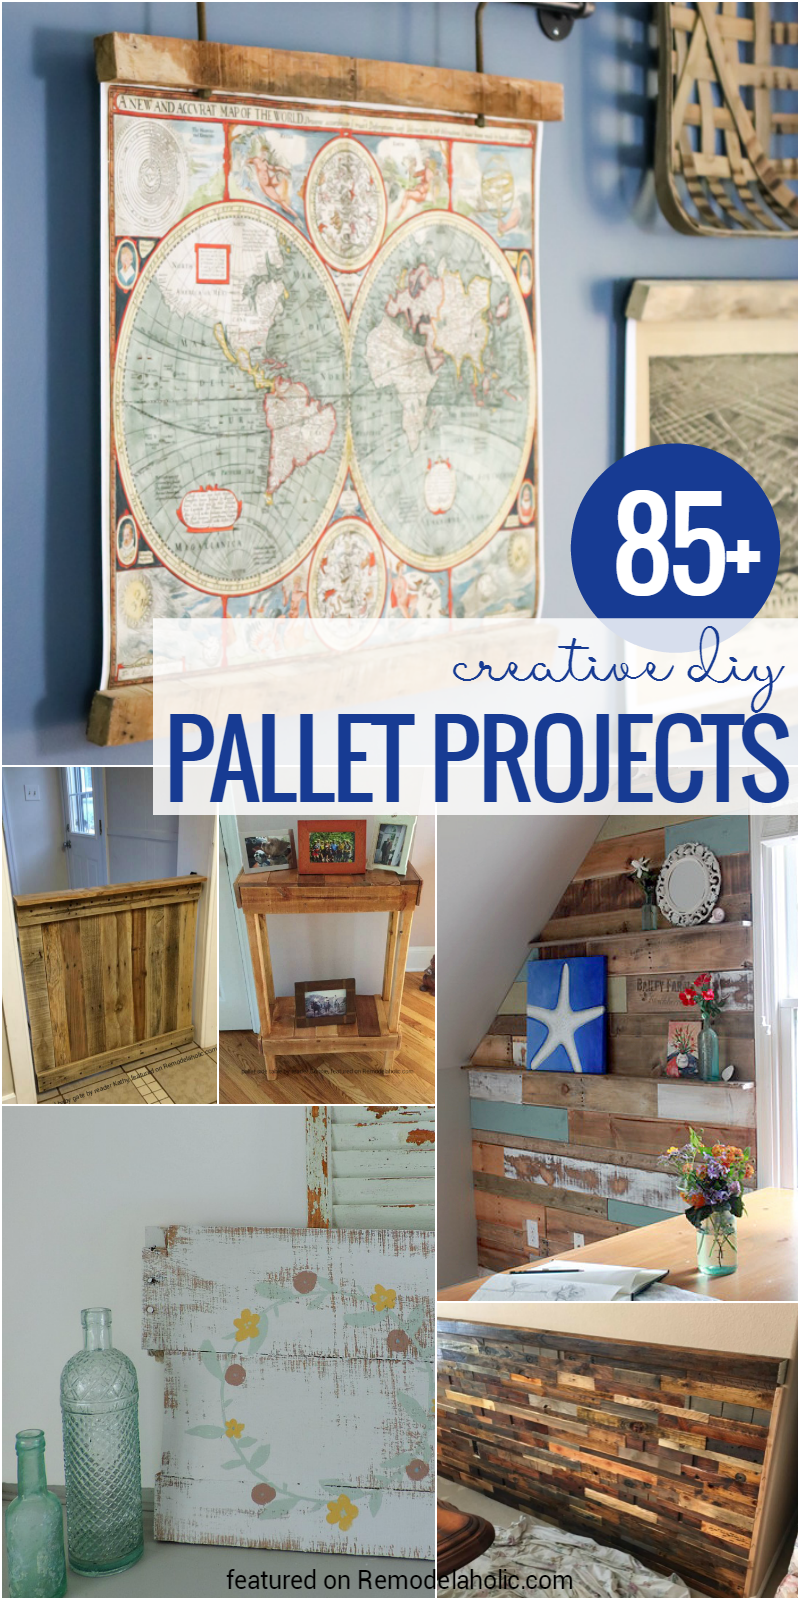 85+ Creative DIY Pallet Projects